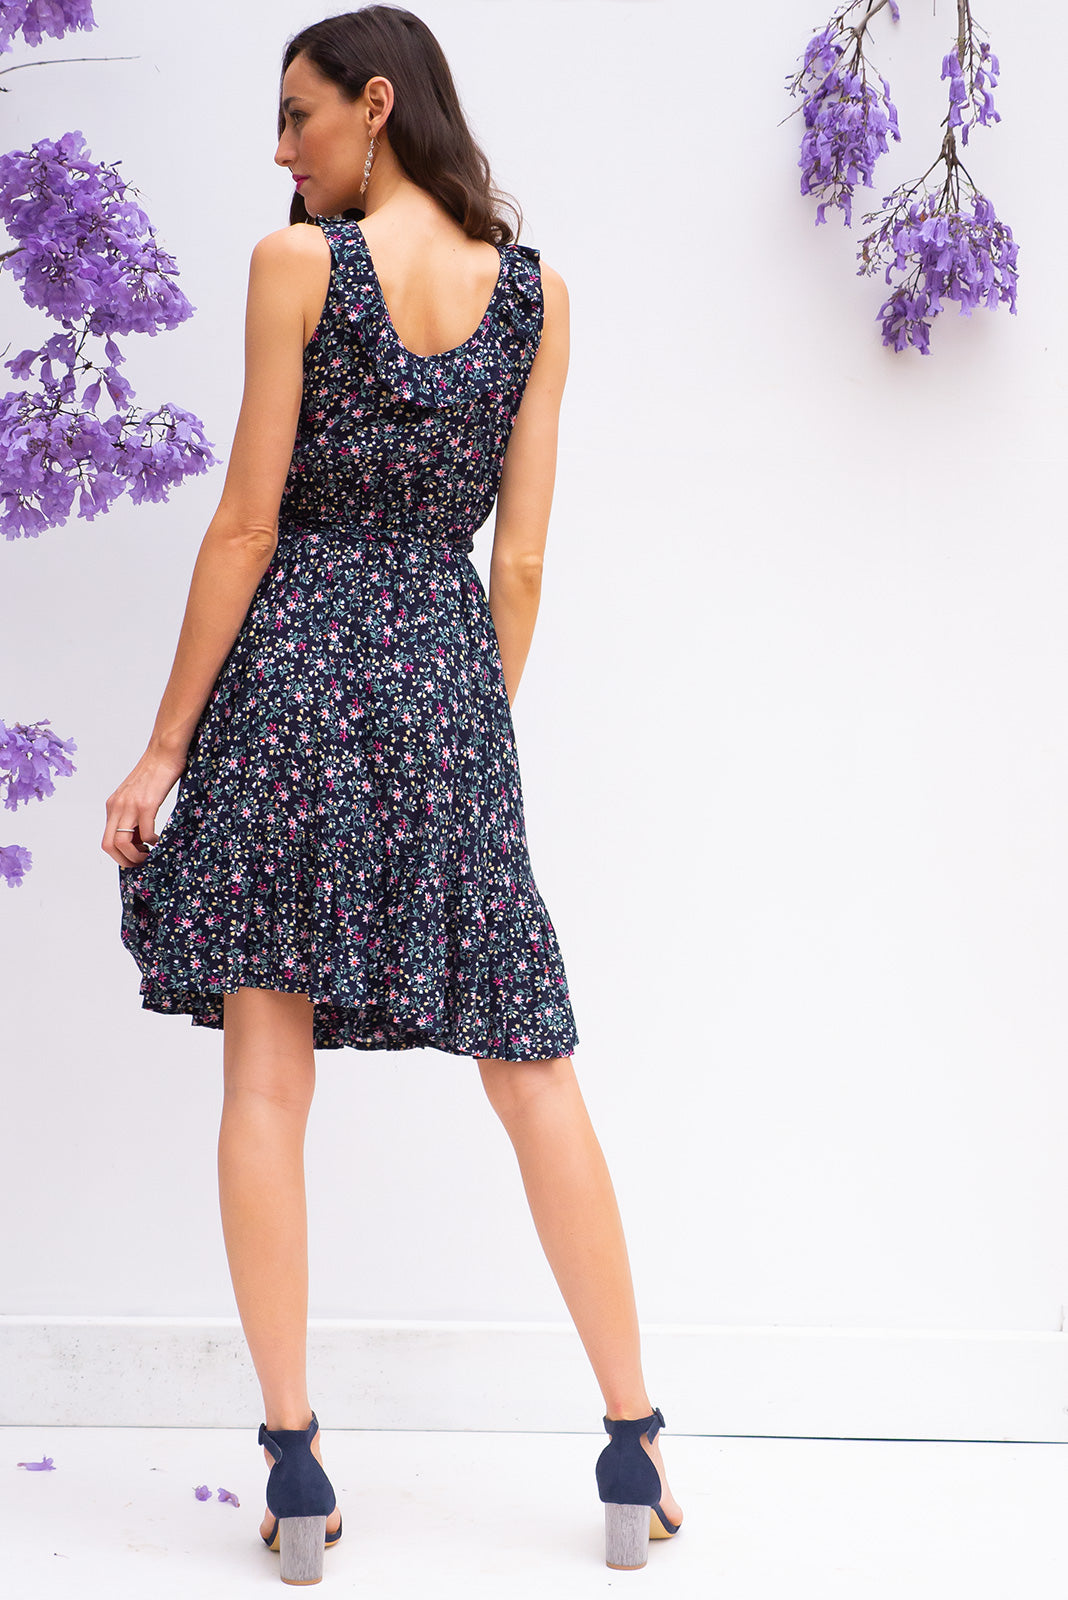 Paloma Navy Ditzy Wrap Dress features a flattering wrap around shape, sleeveless bodice with a frill and comes in a dark navy small floral print woven rayon